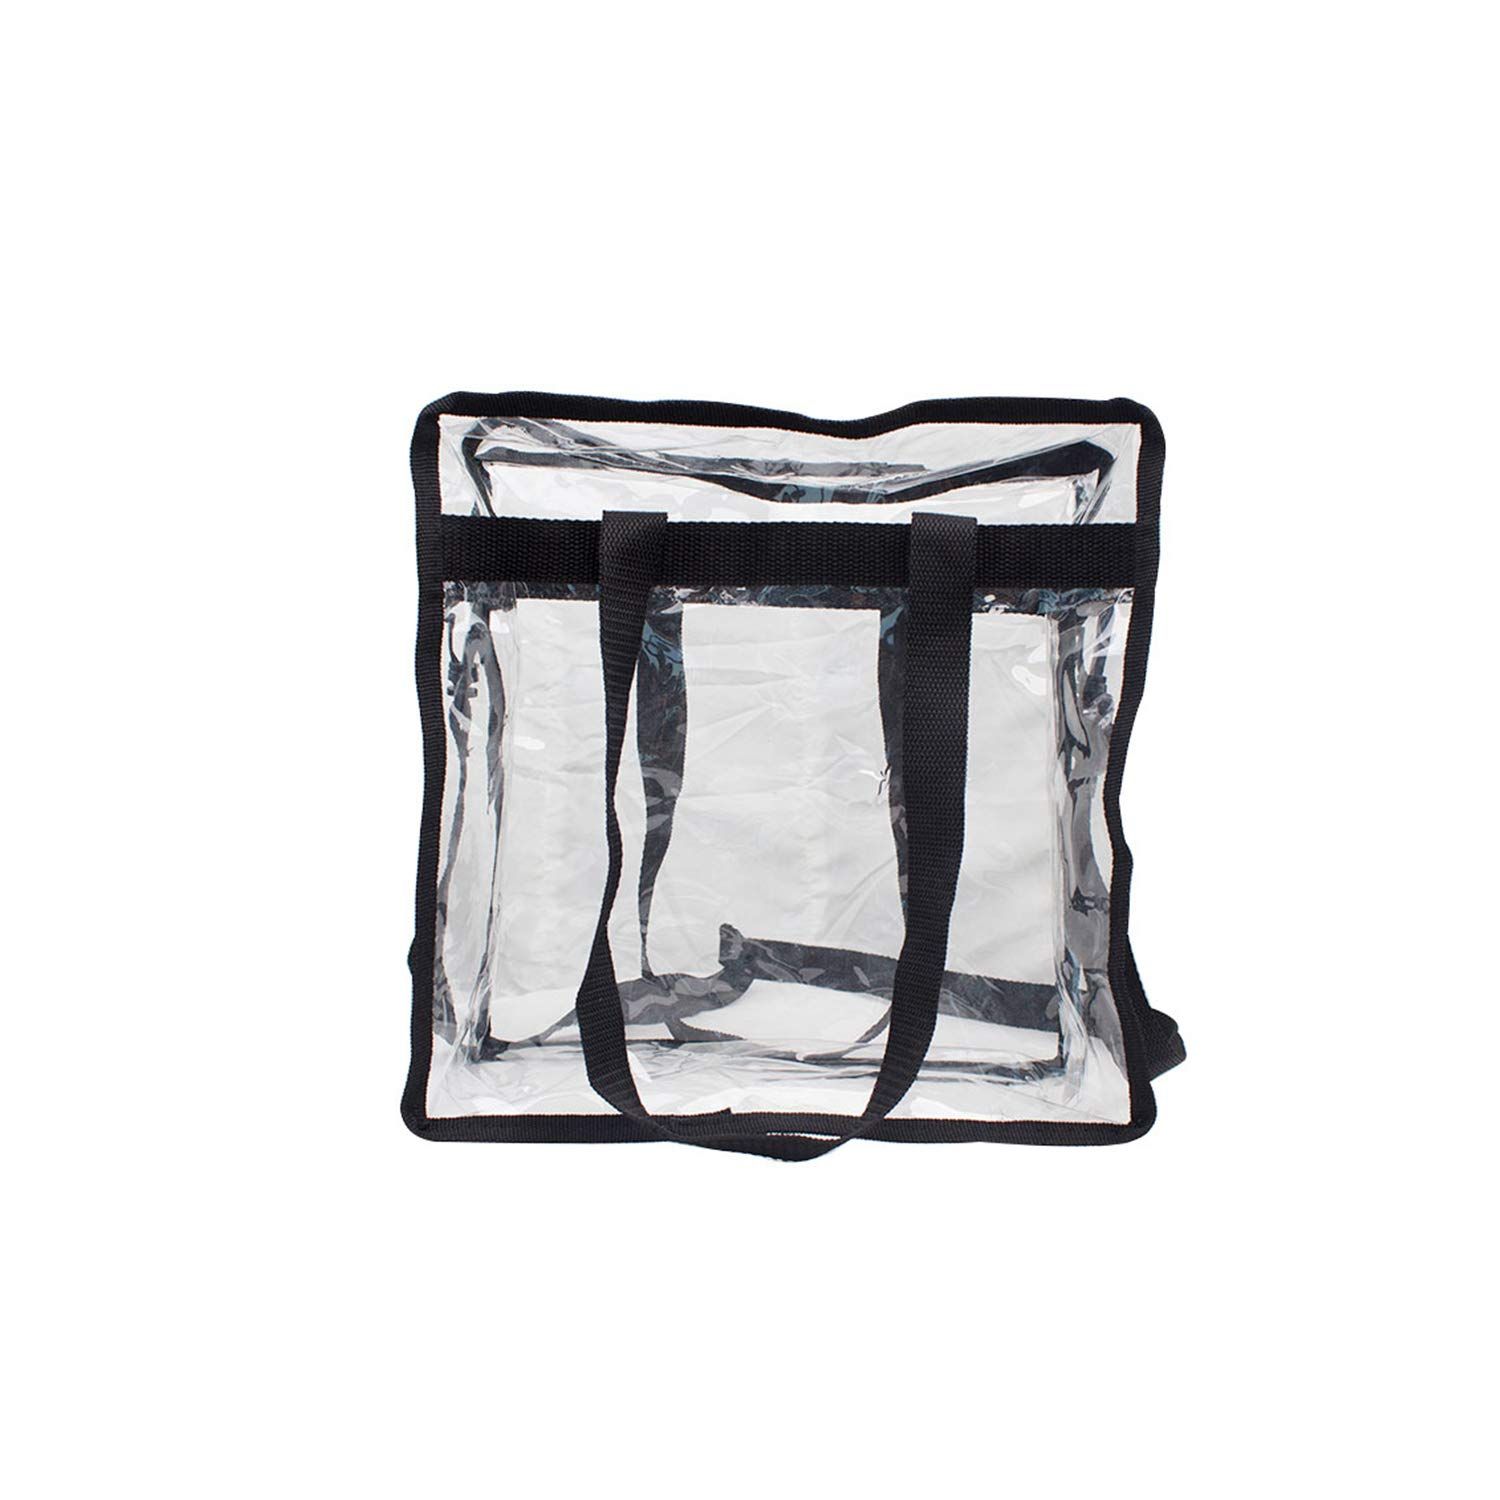 """Premium Clear Stadium Approved Bag - Clear Tote Bag with Cross Body Messenger Adjustable Shoulder Strap-12"""" X 12"""" X 6"""" by Zuess (Image #5)"""